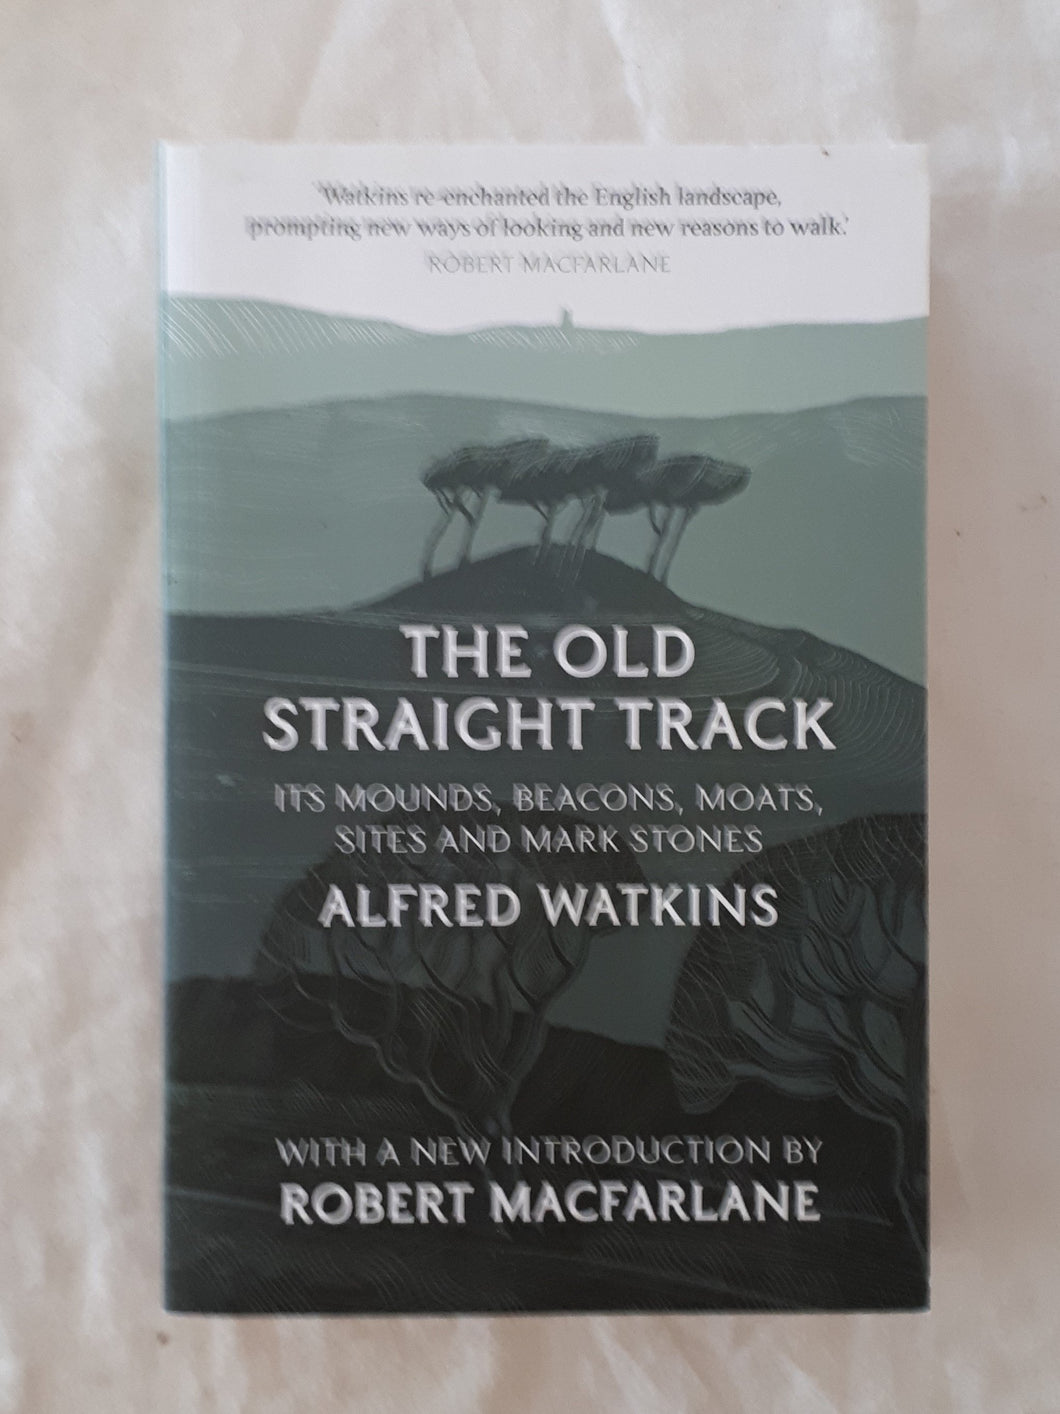 The Old Straight Track - Edward Watkins